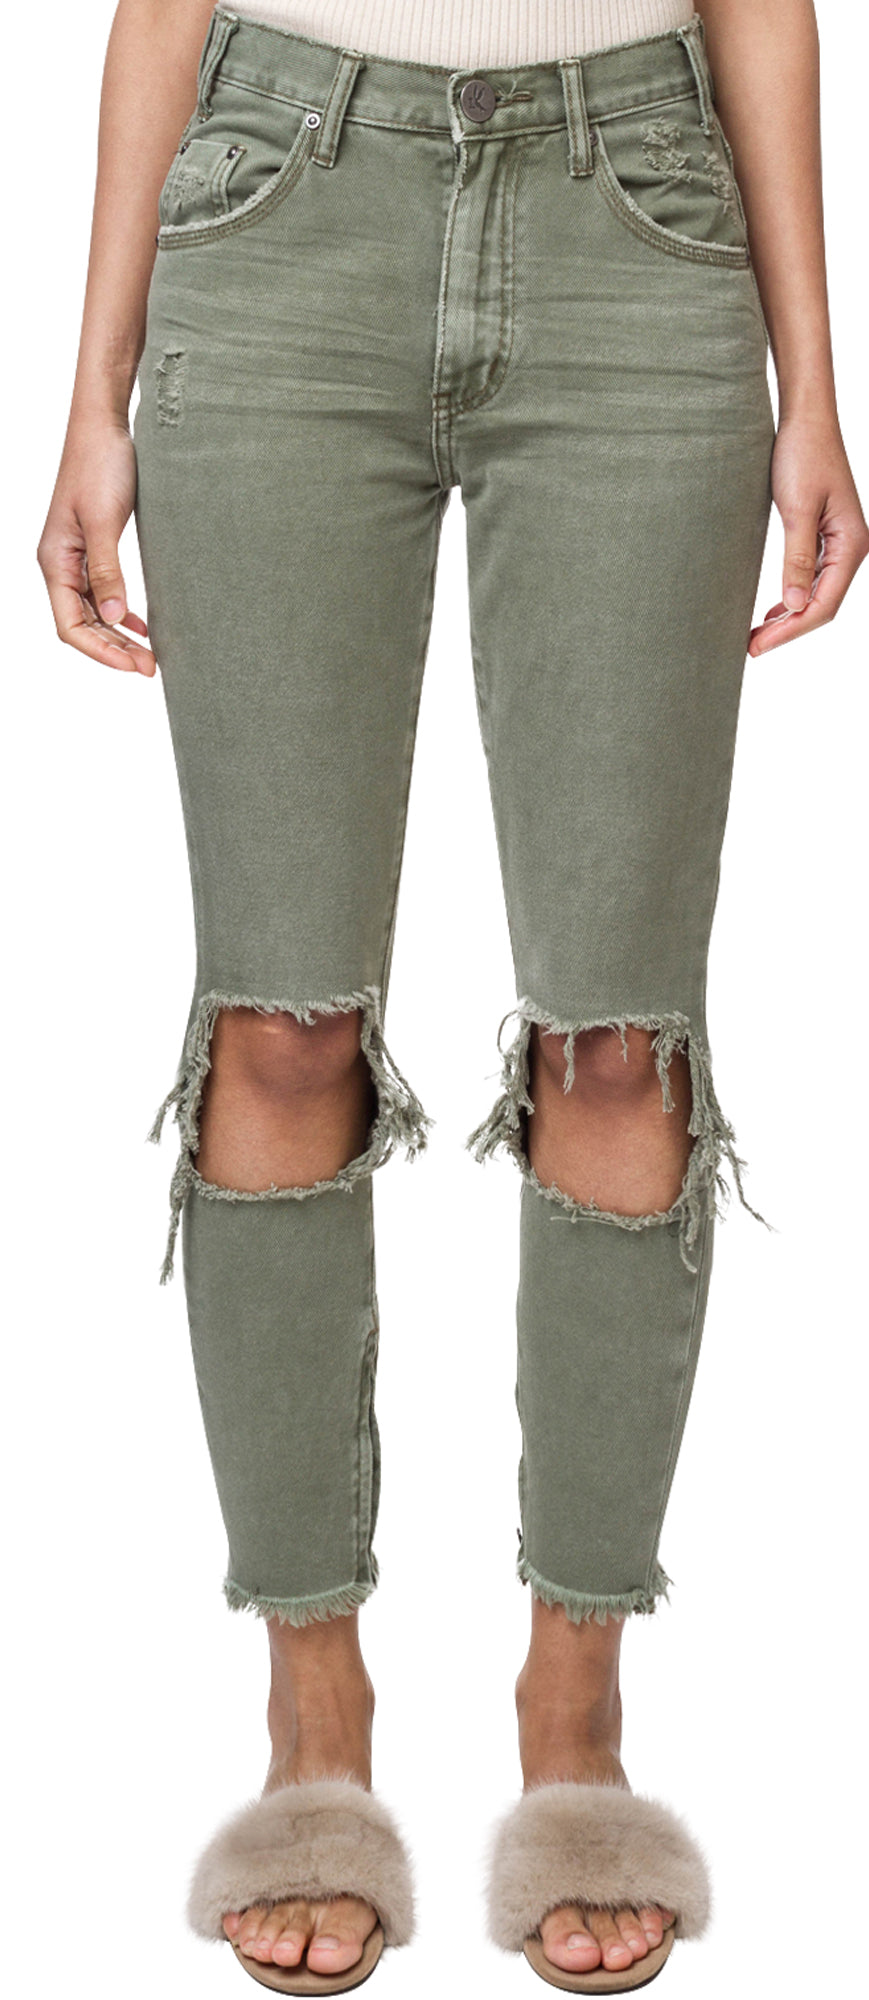 Super Khaki High Waisted Freebirds